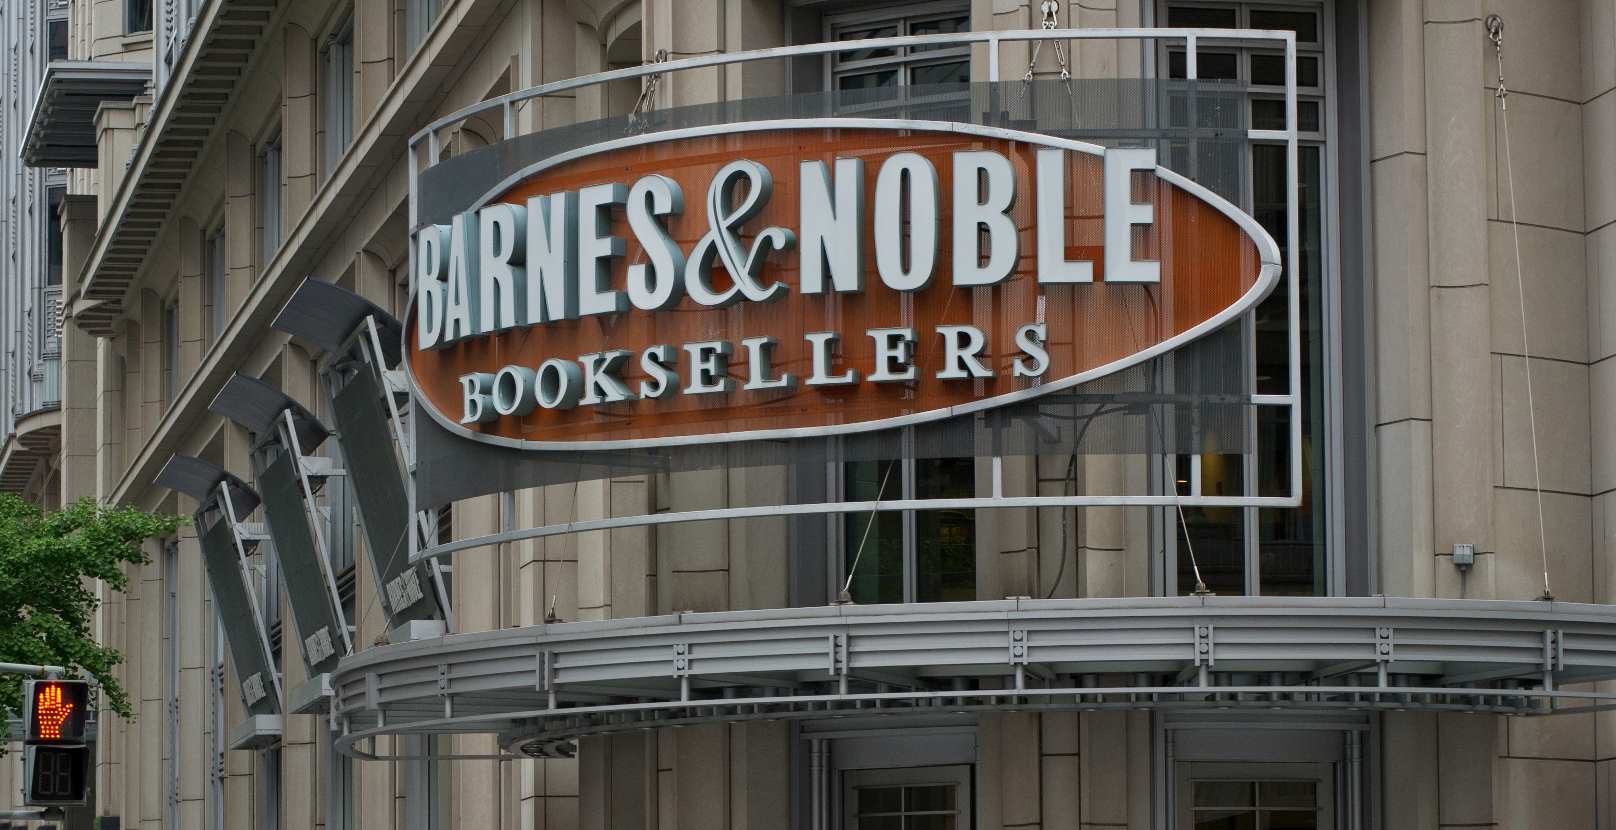 Microsoft/Barnes & Noble subsidiary is a done deal, but a standalone public company may not happen ...